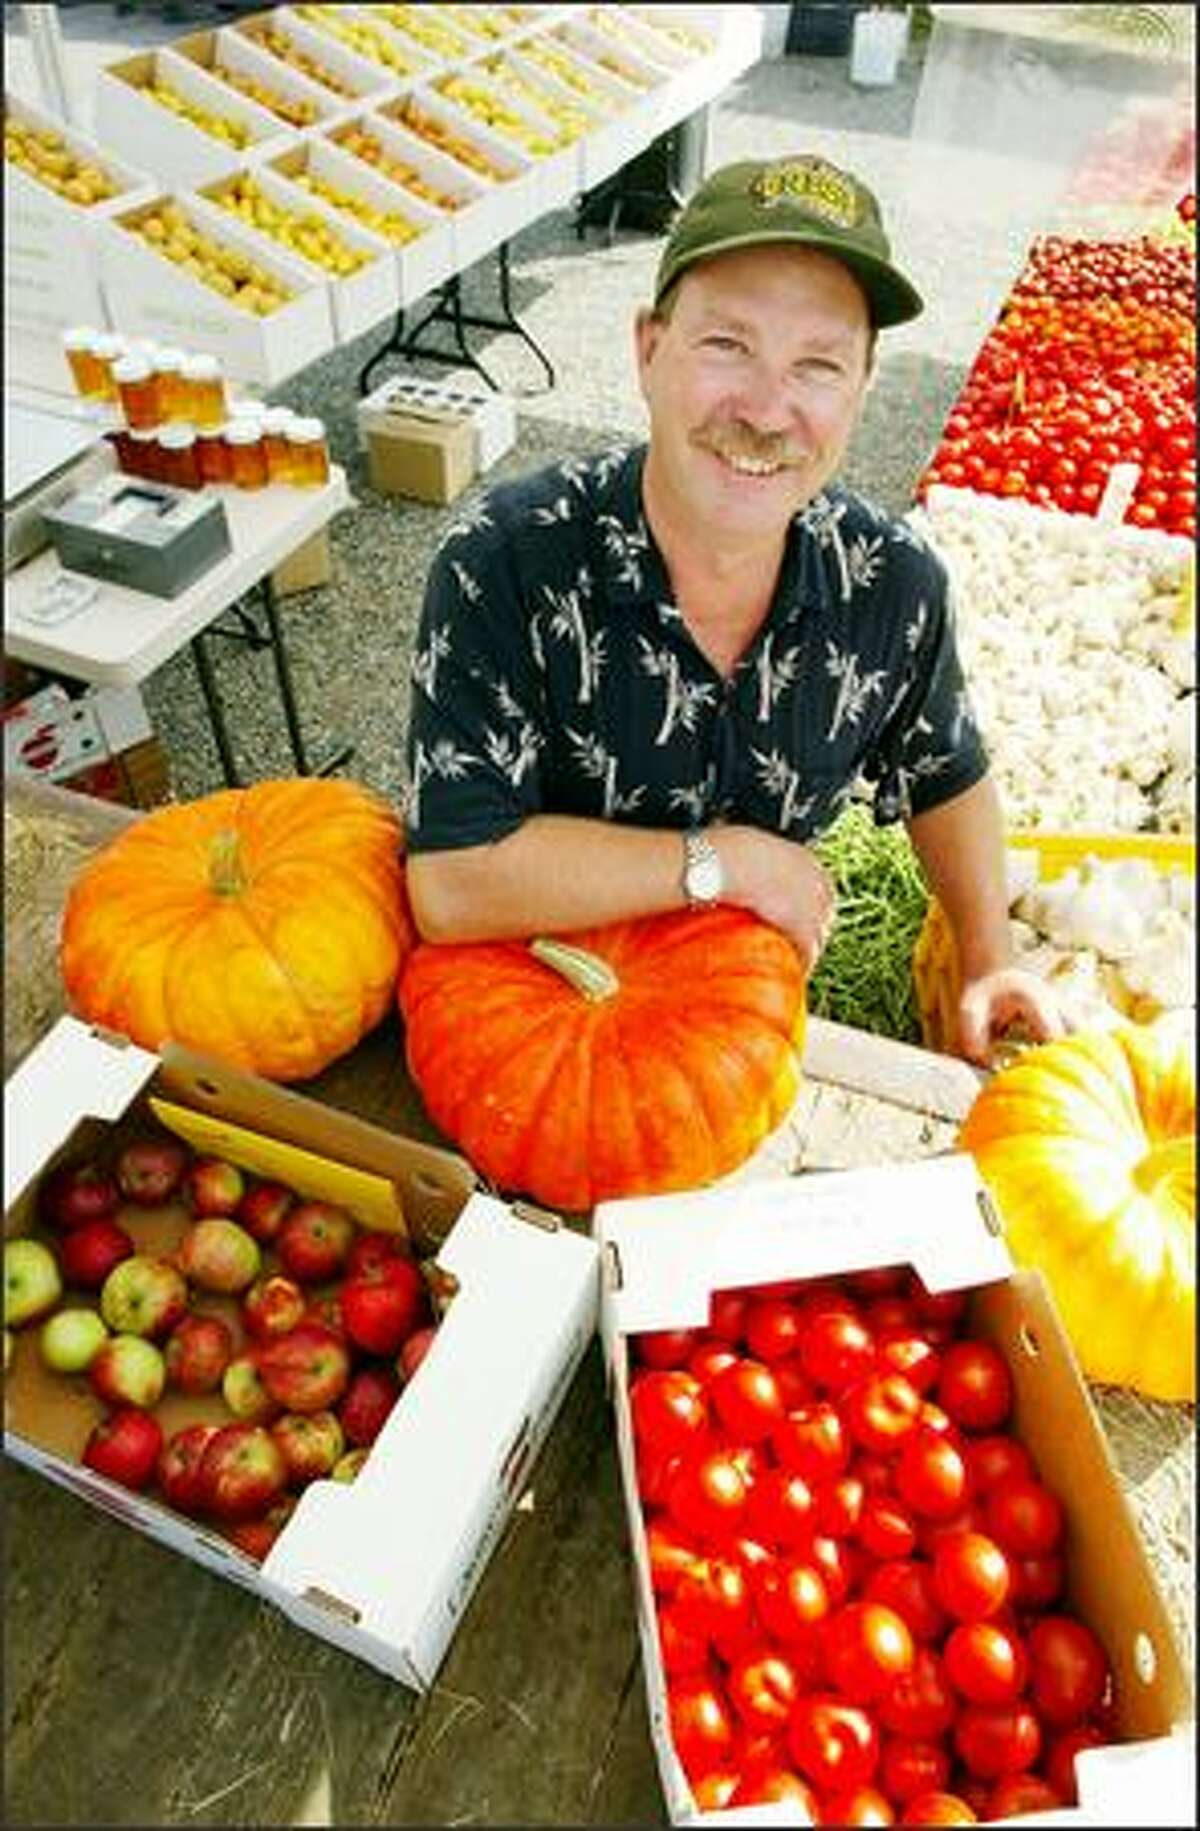 Wade Bennett's stand at the Burien farmers market is filled with vegetables and fruits from his Rockridge Orchards in Enumclaw. His diverse 41-acre orchard produces 160 different items.